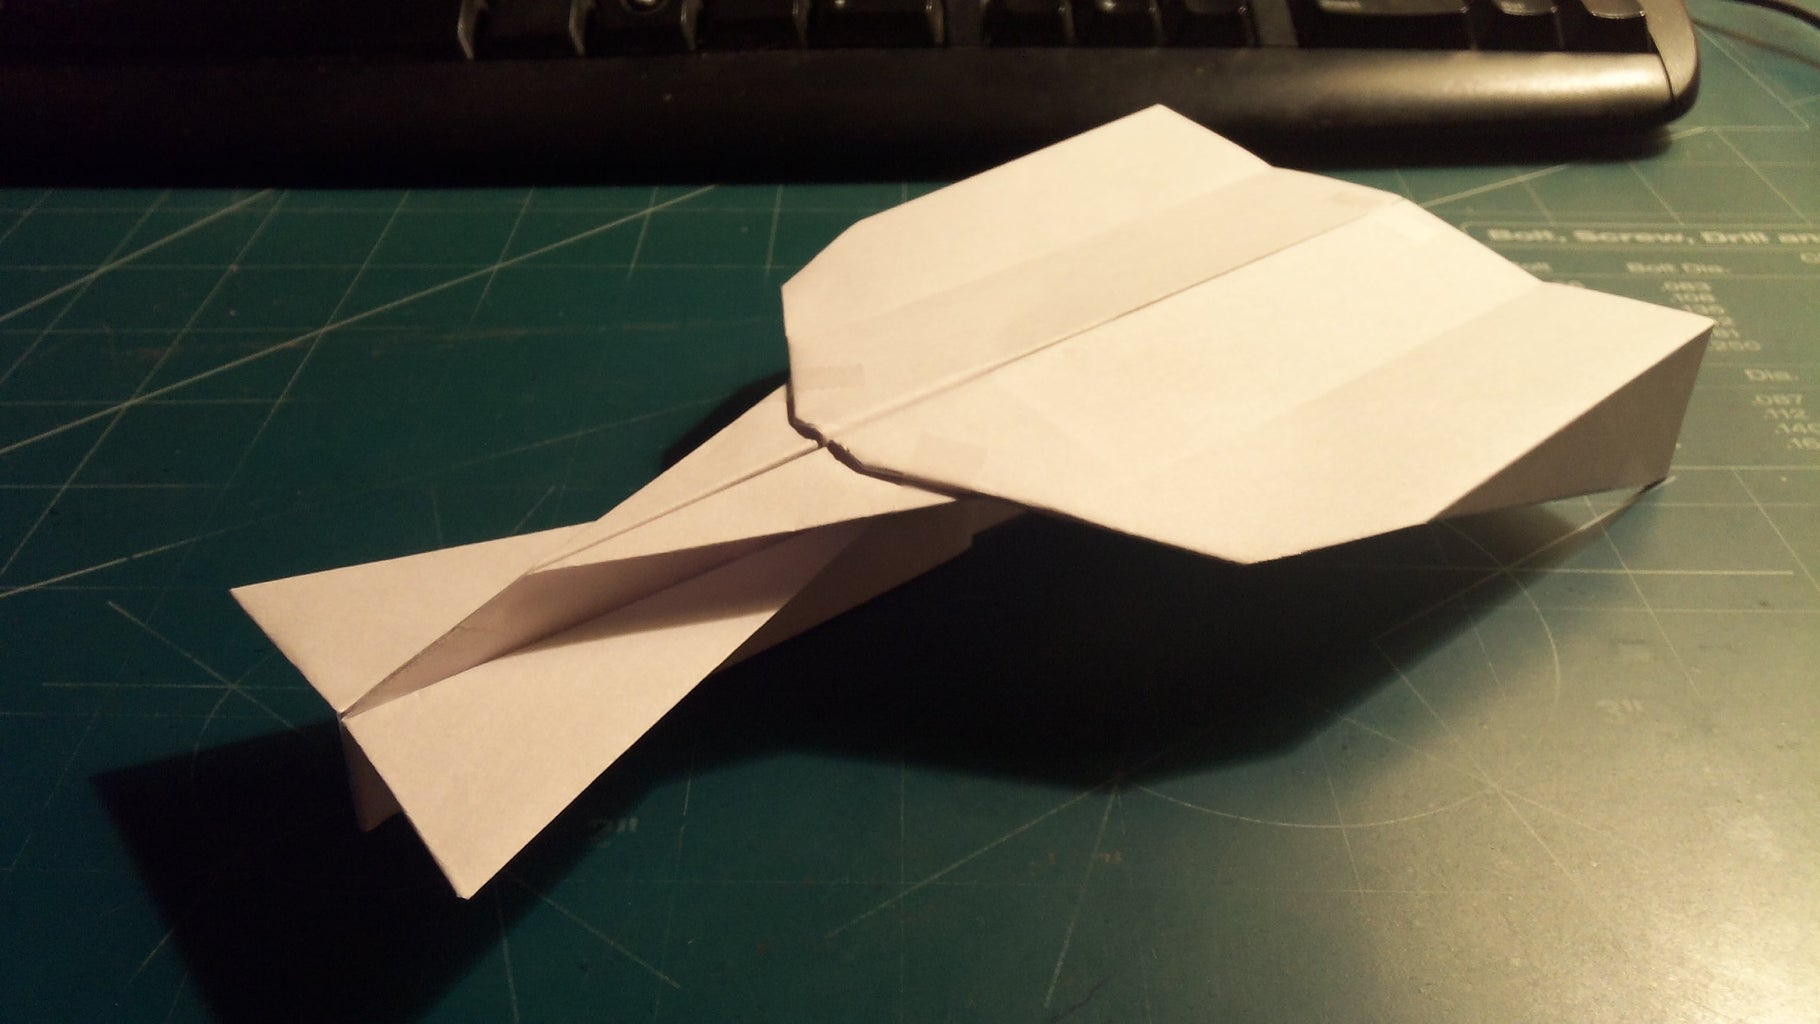 How to Make the Turbo StratoVulcan Paper Airplane